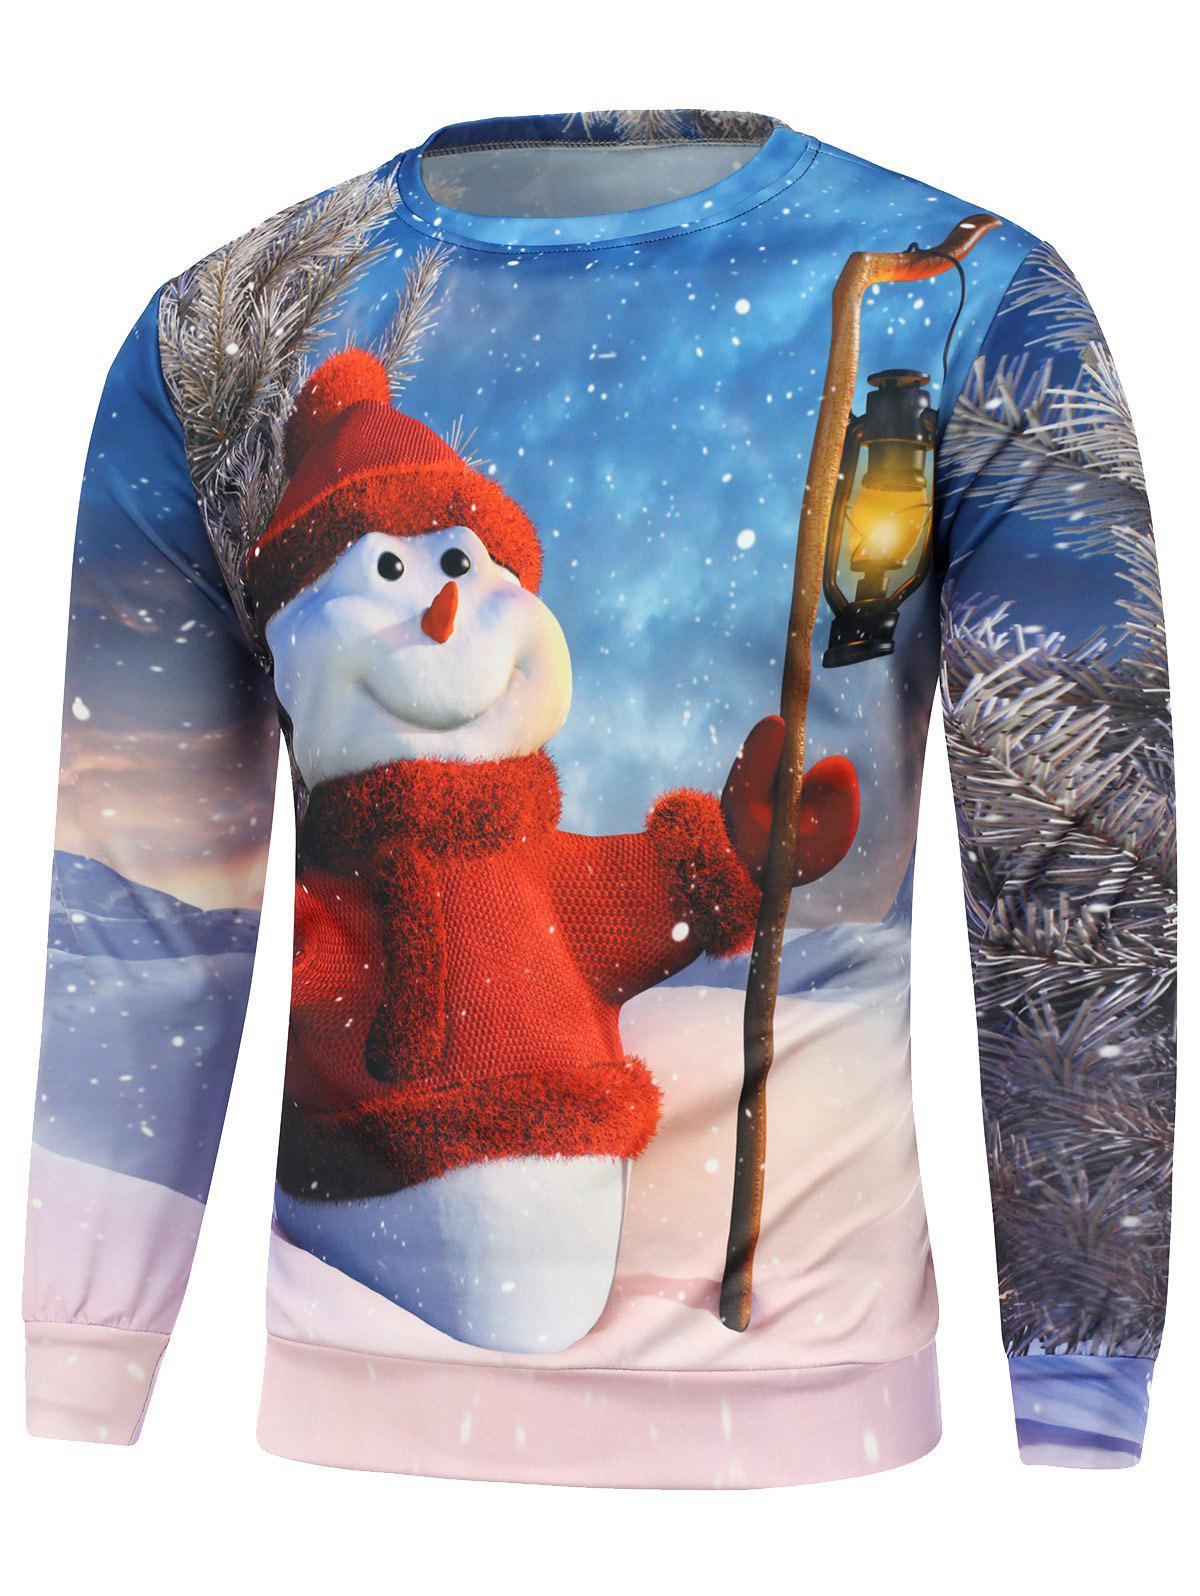 Christmas Snowman Printed Long Sleeve SweatshirtMEN<br><br>Size: S; Color: BLUE; Material: Cotton,Polyester; Shirt Length: Regular; Sleeve Length: Full; Style: Casual; Weight: 0.450kg; Package Contents: 1 x Sweatshirt;